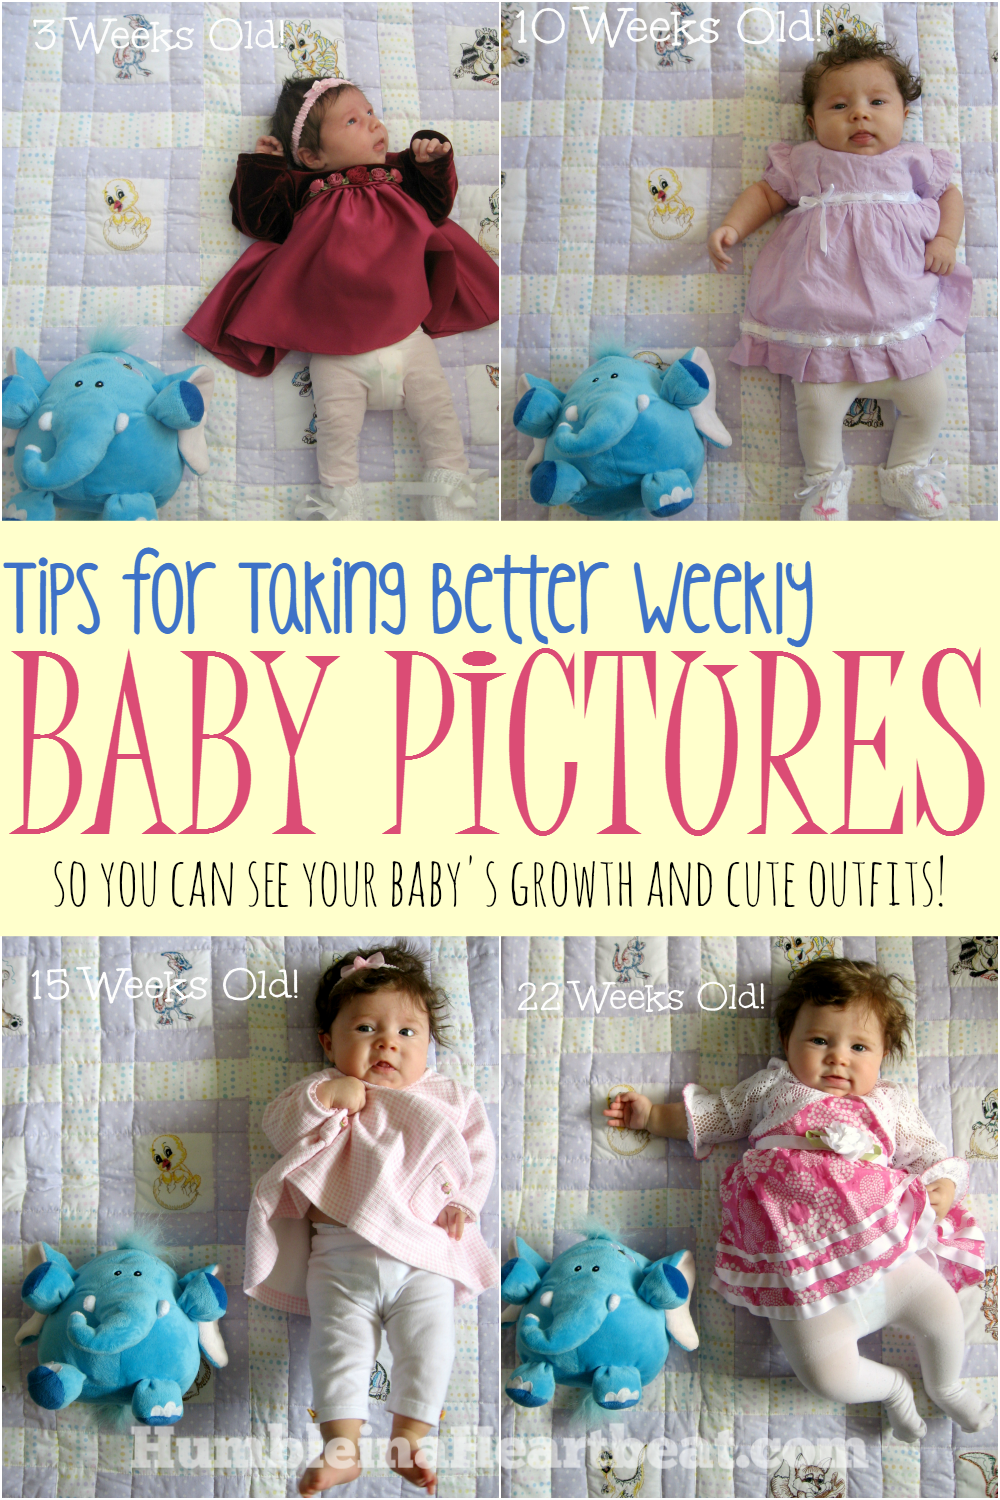 One way to track growth and all those clothes your baby will go through is to take weekly baby pictures for the 1st year. Here are some great tips for taking them!